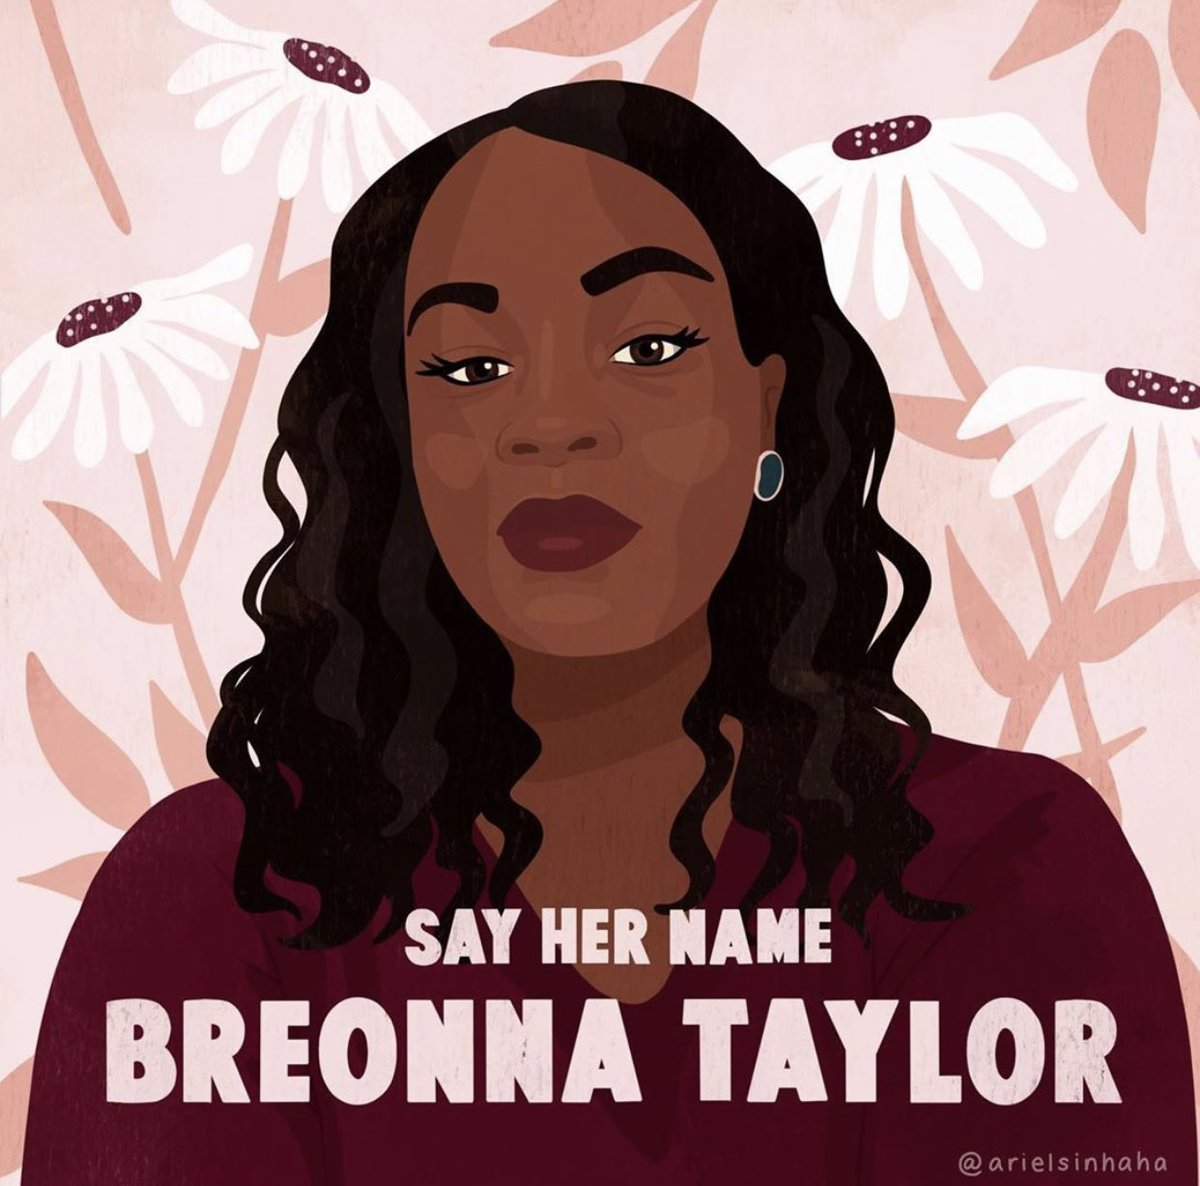 No arrests have been made. No officers charged.  We want #JusticeforBre, @louisvillemayor.   RT for #BreonnaTaylor. https://t.co/nPCapgY0uz